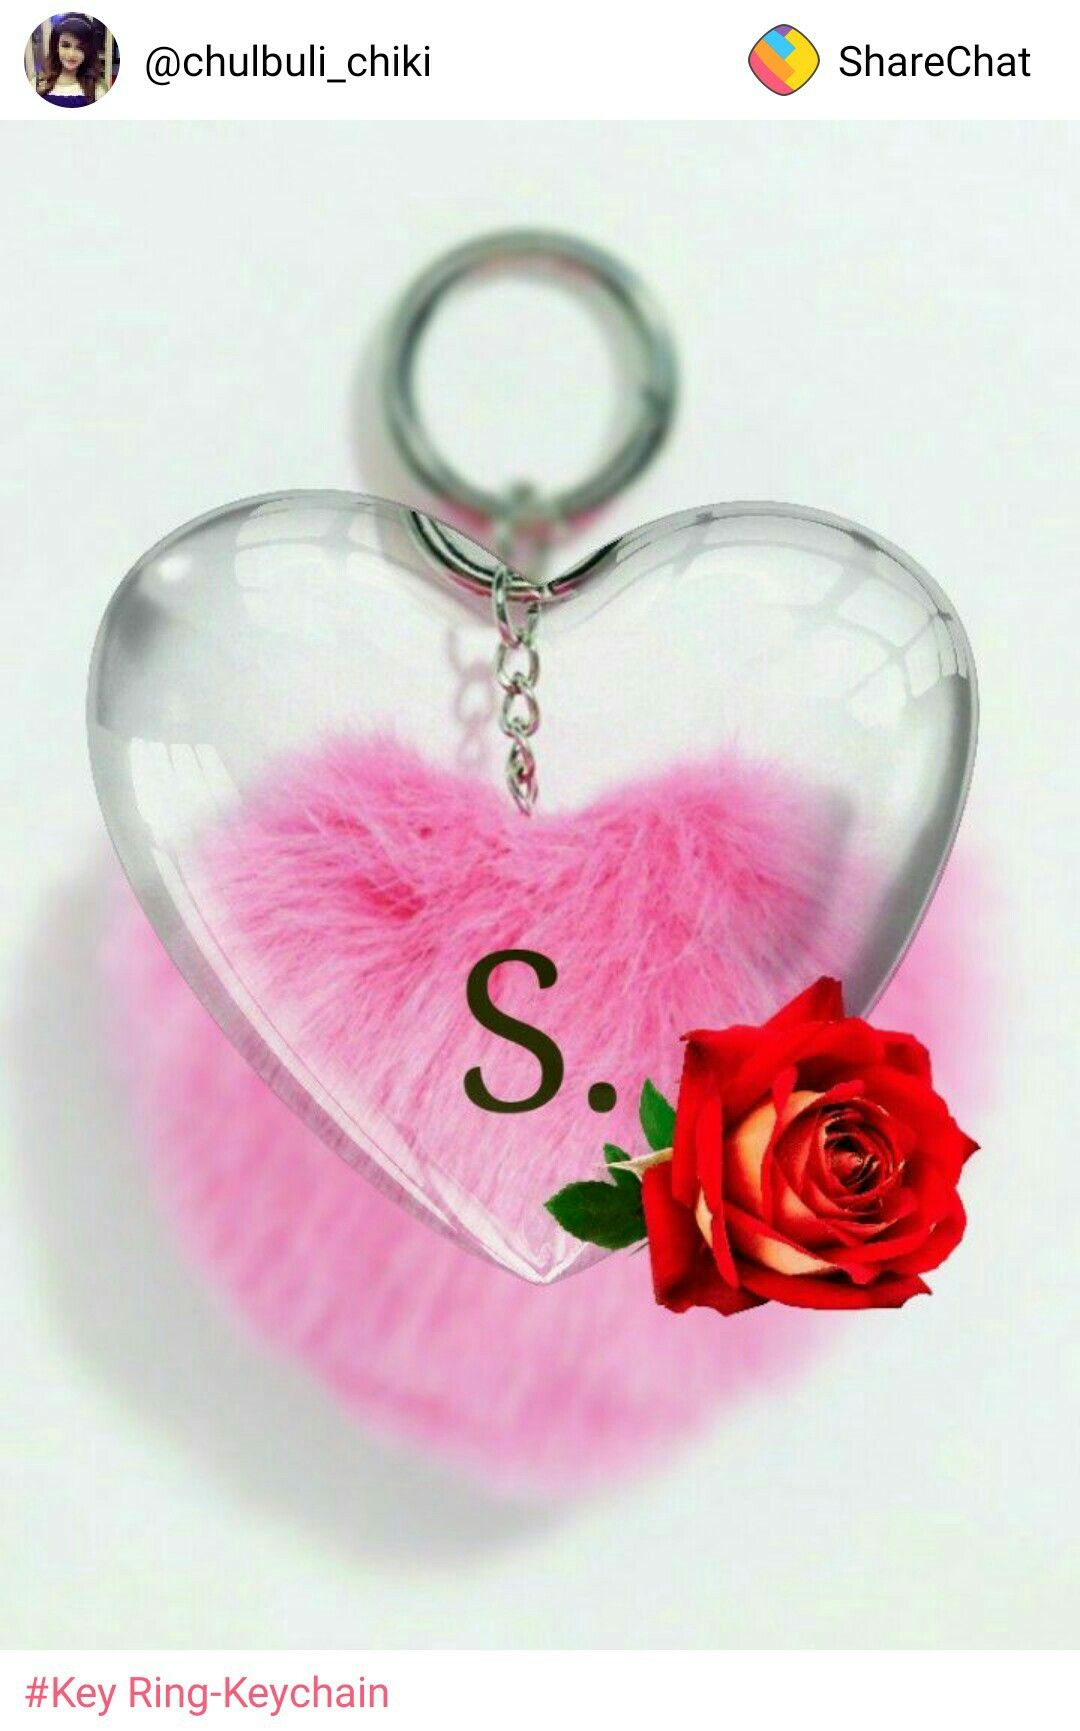 Love Images Of Letter S - HD Wallpaper